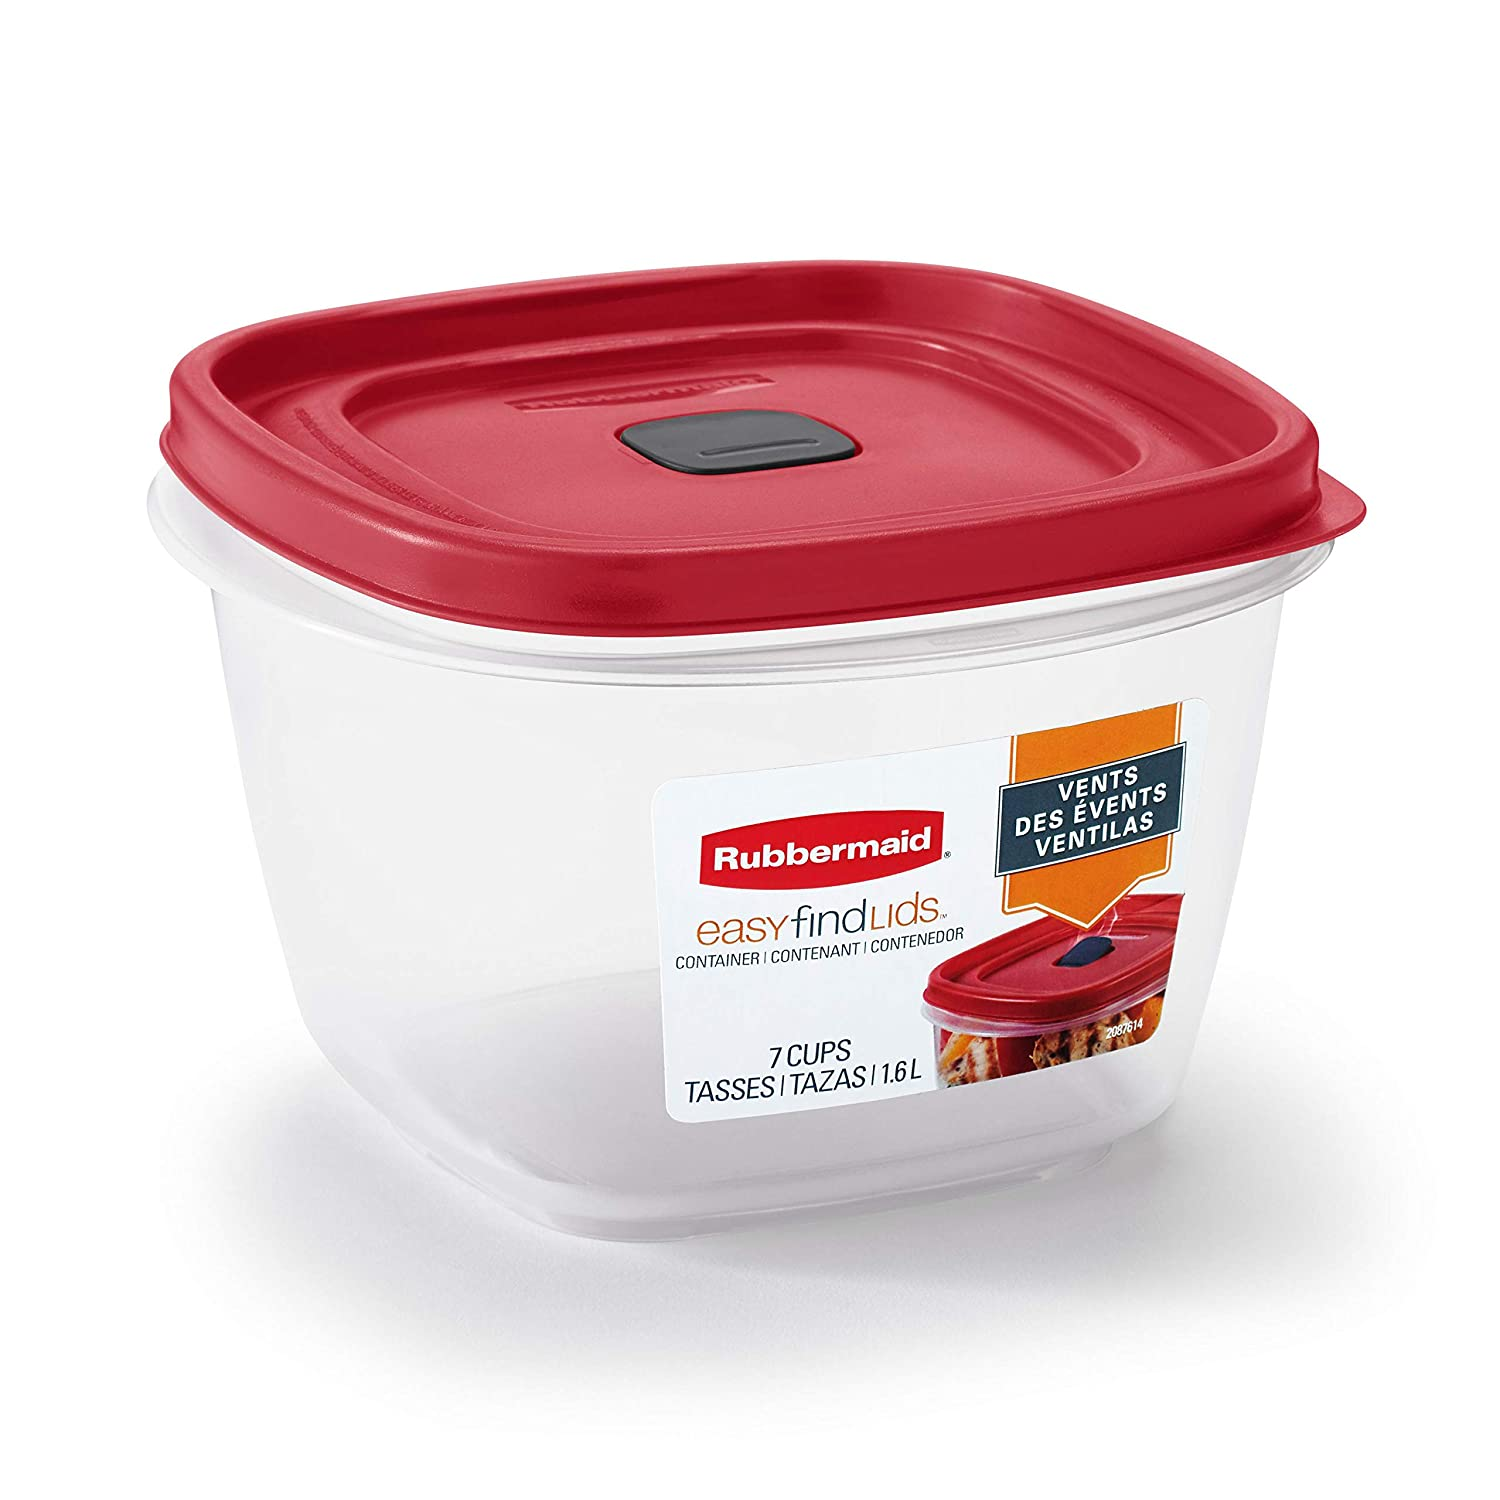 Rubbermaid Easy Find Lids 7-Cup Food Storage and Organization Container, Racer Red